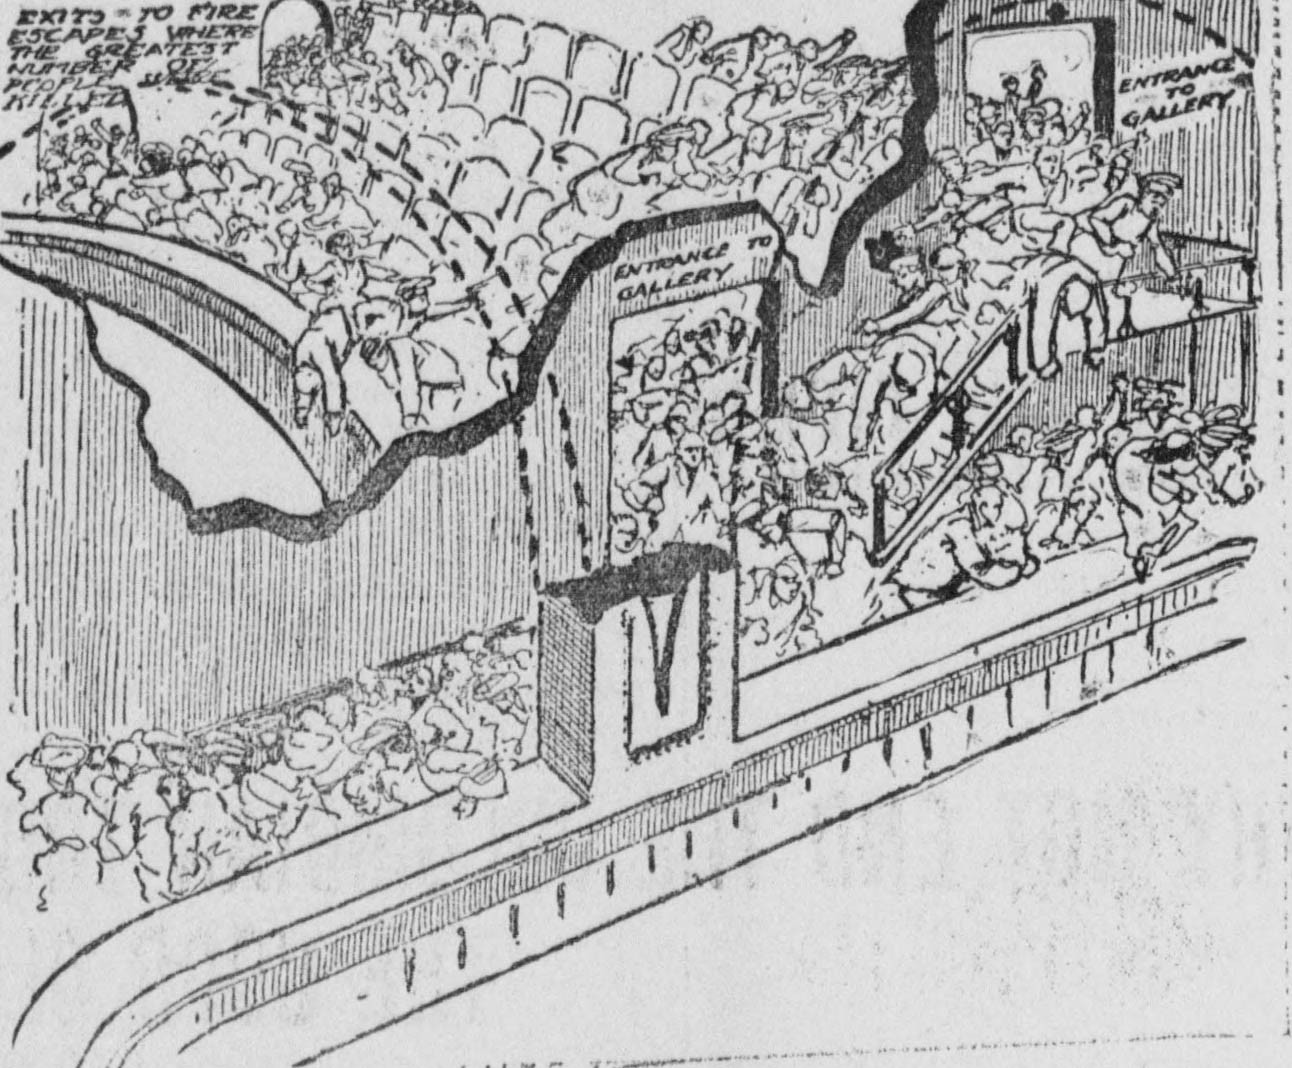 Cutaway Diagram Of The Iroquois Theatre